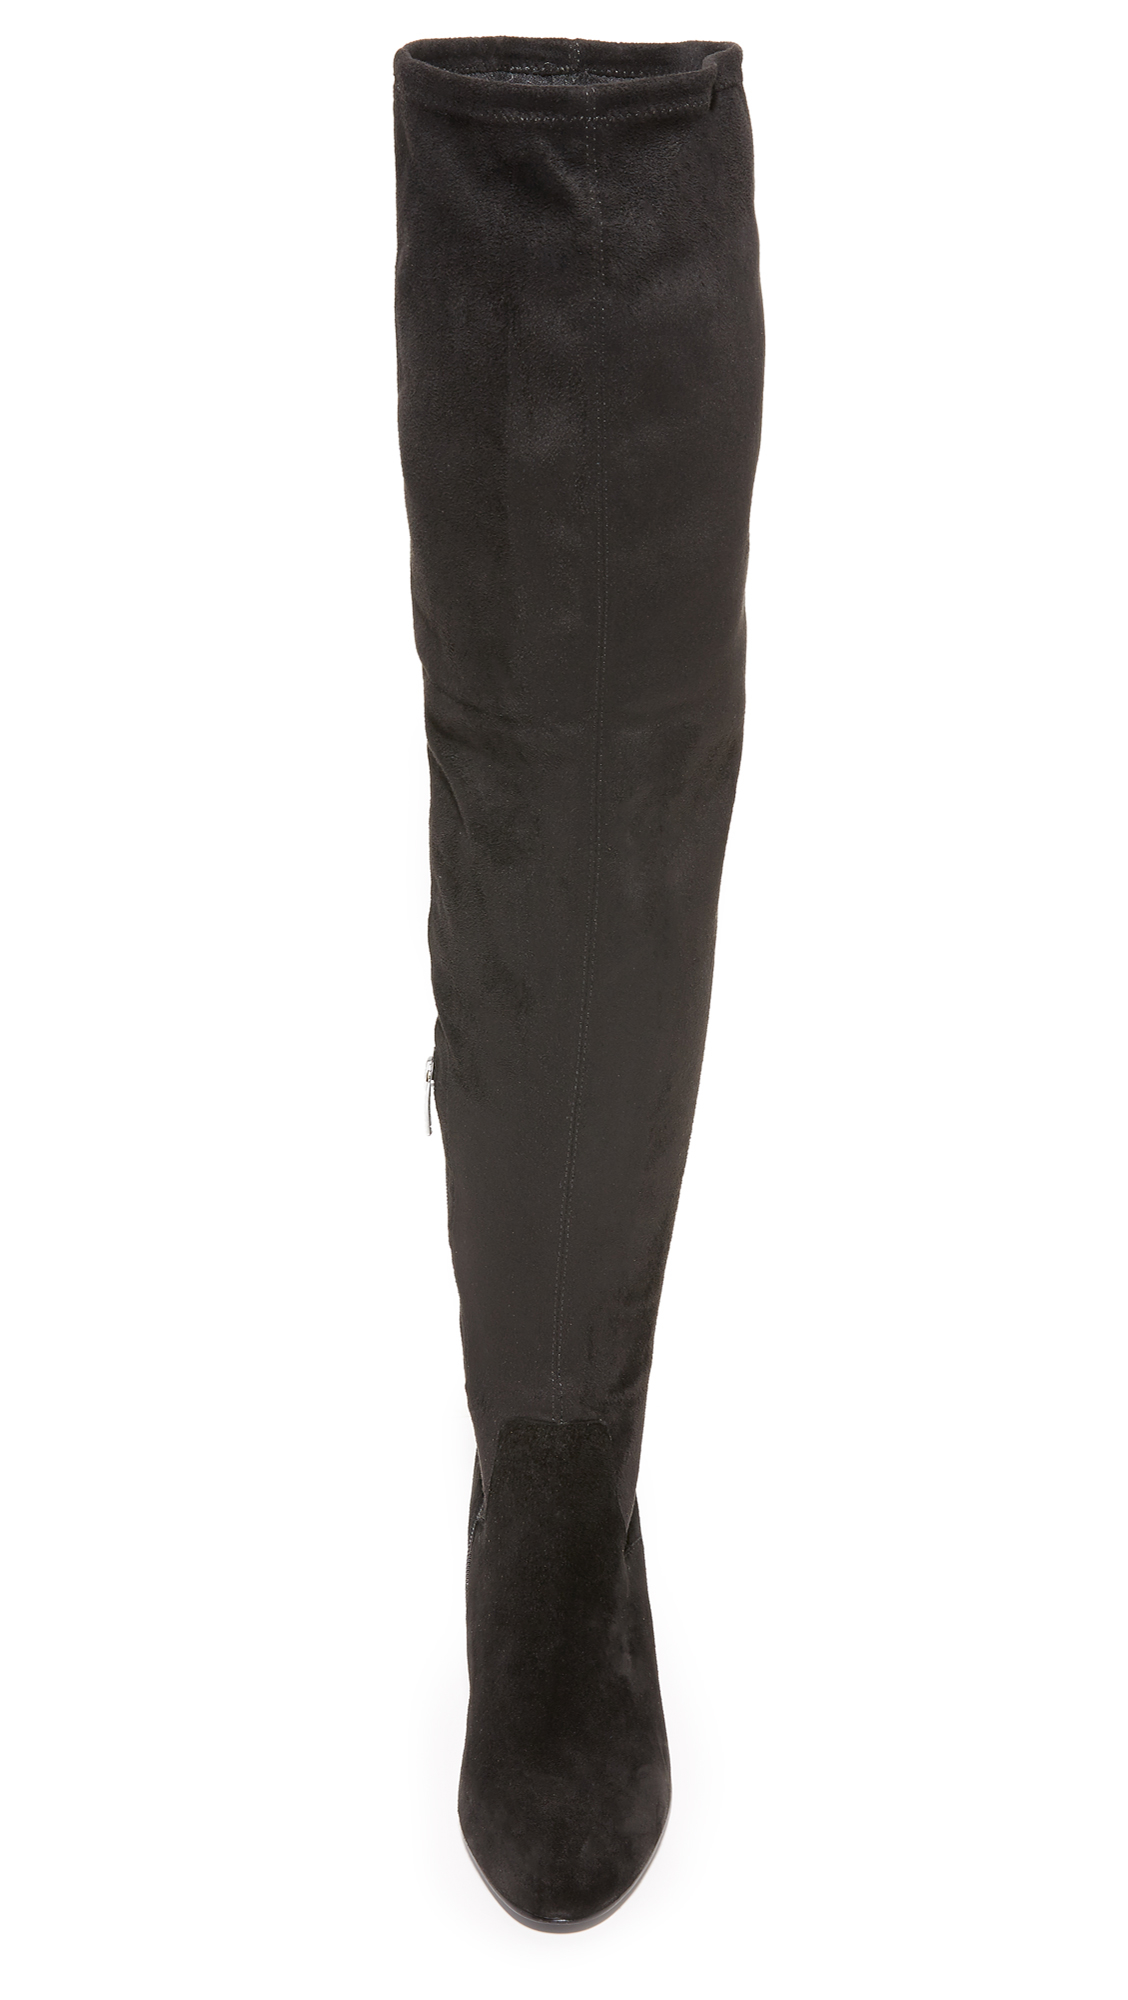 Ash Suede Elisa Thigh High Boots in Black